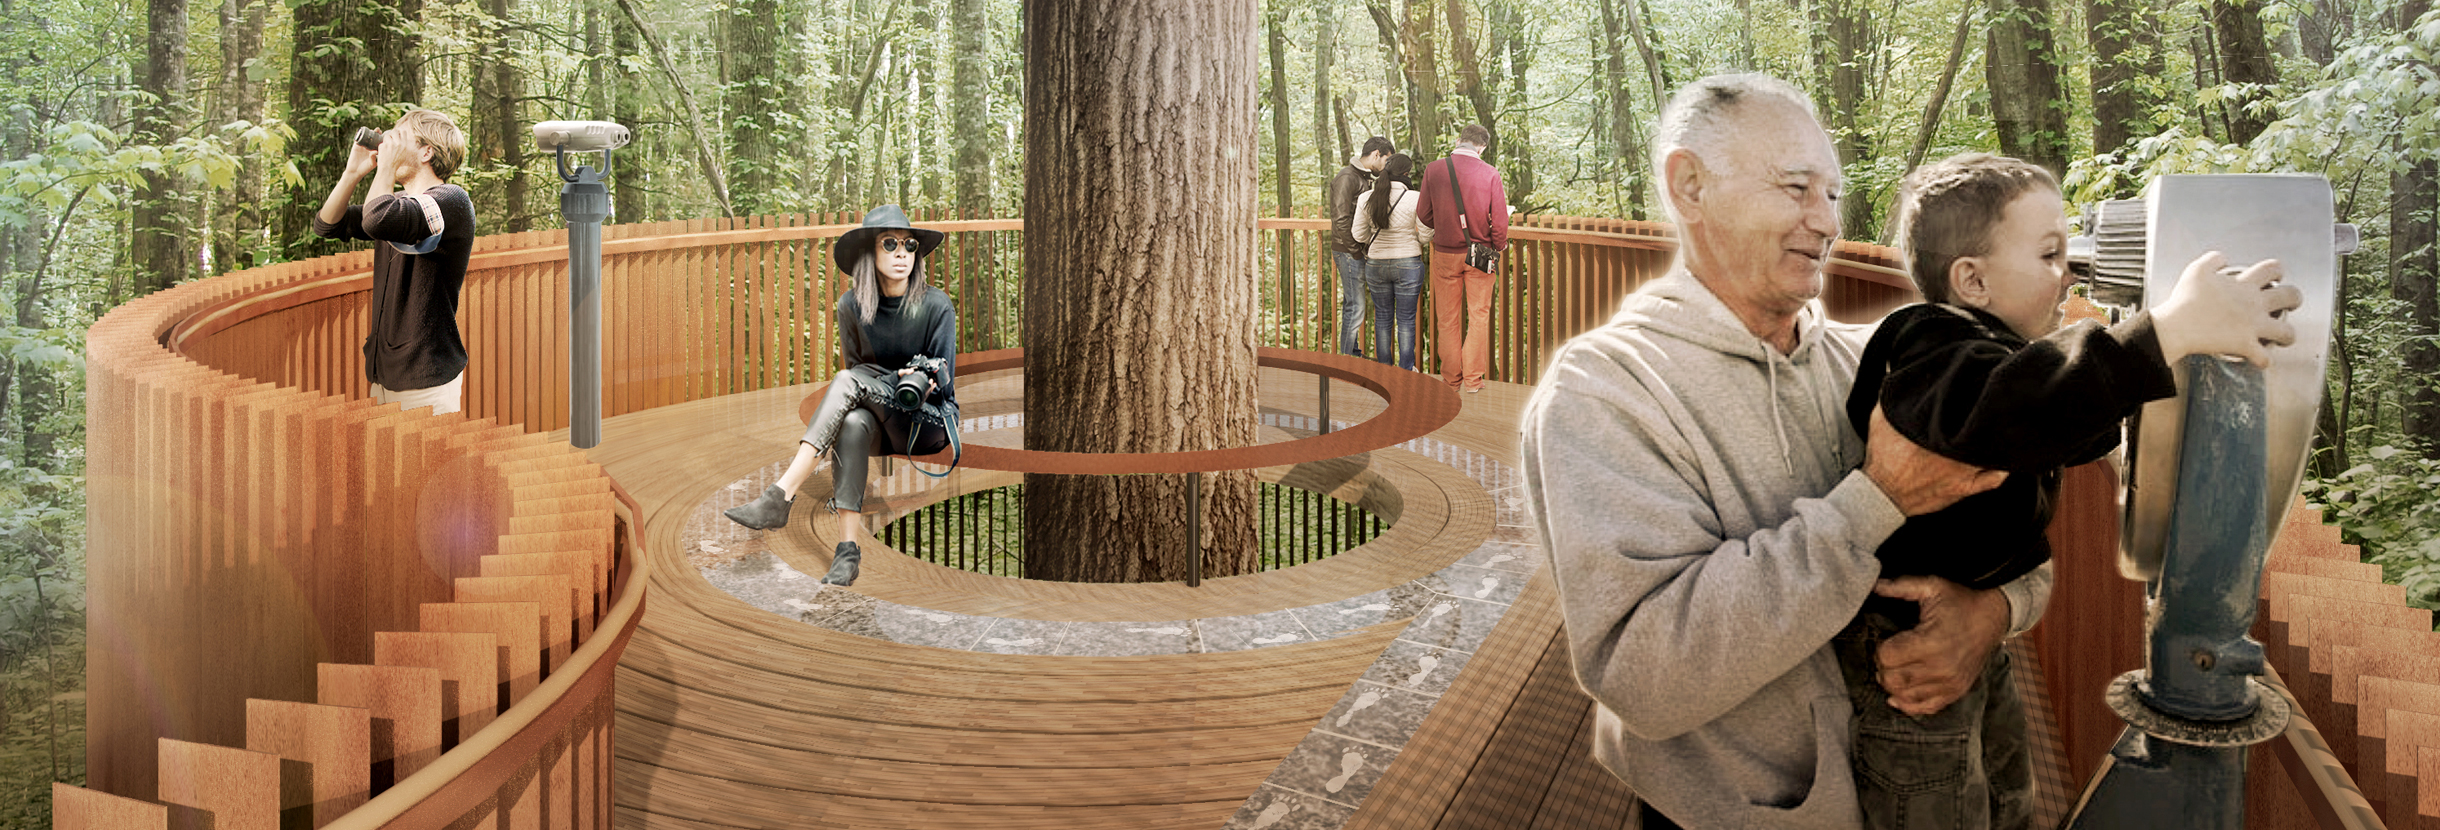 architect's rendering of the South Carolina Botanical Garden's Tree House Memorial